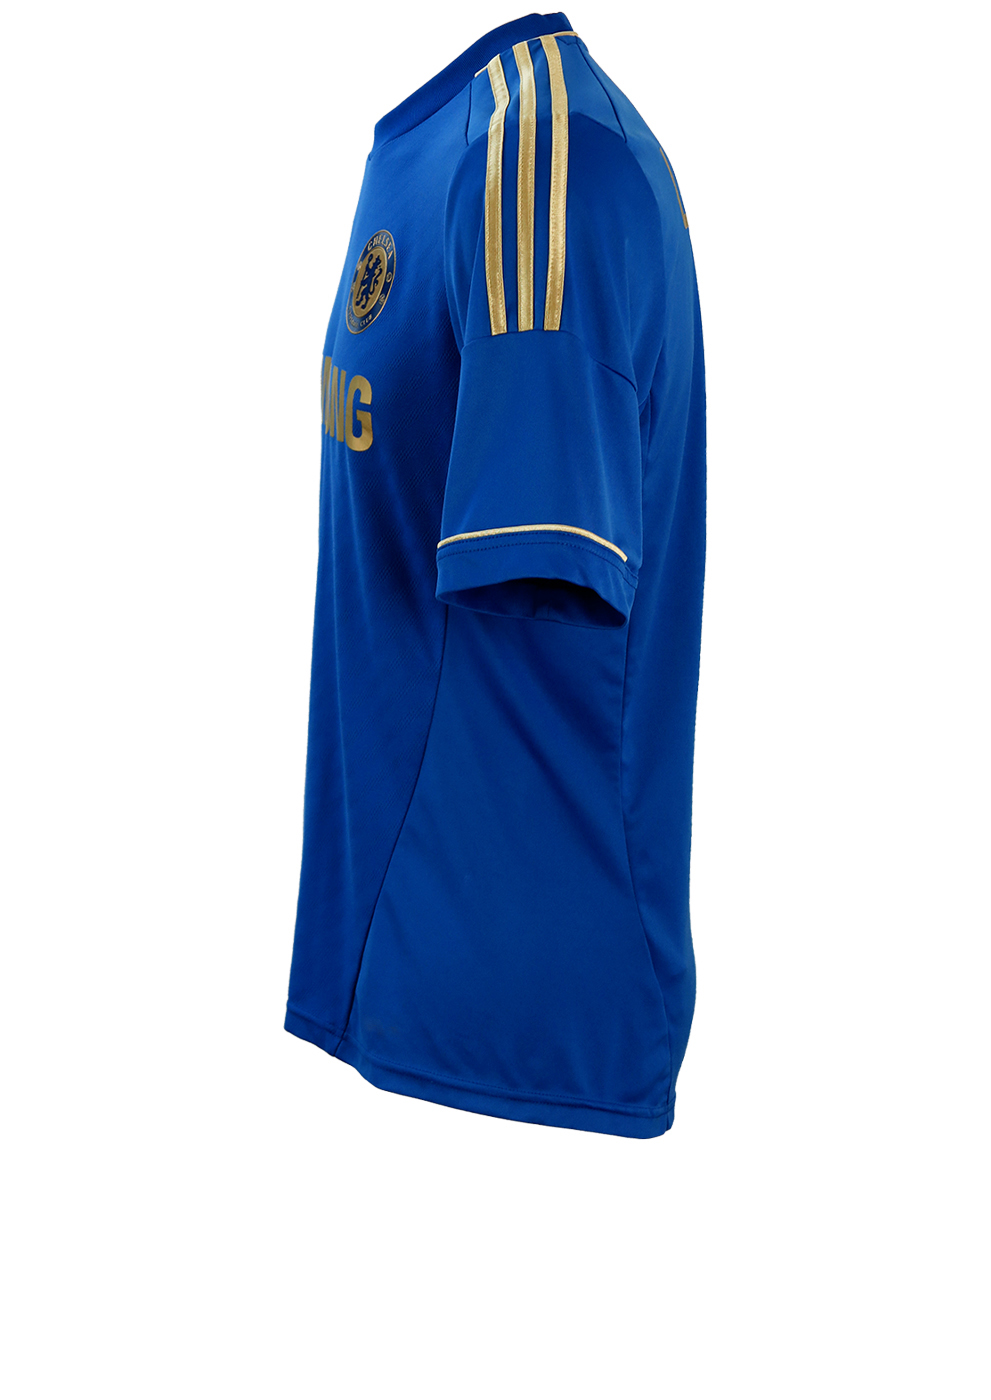 sports shoes 86af2 22119 2012 Chelsea Football Club TechFit Lampard 8 Adidas Blue & Gold Home Shirt  - M